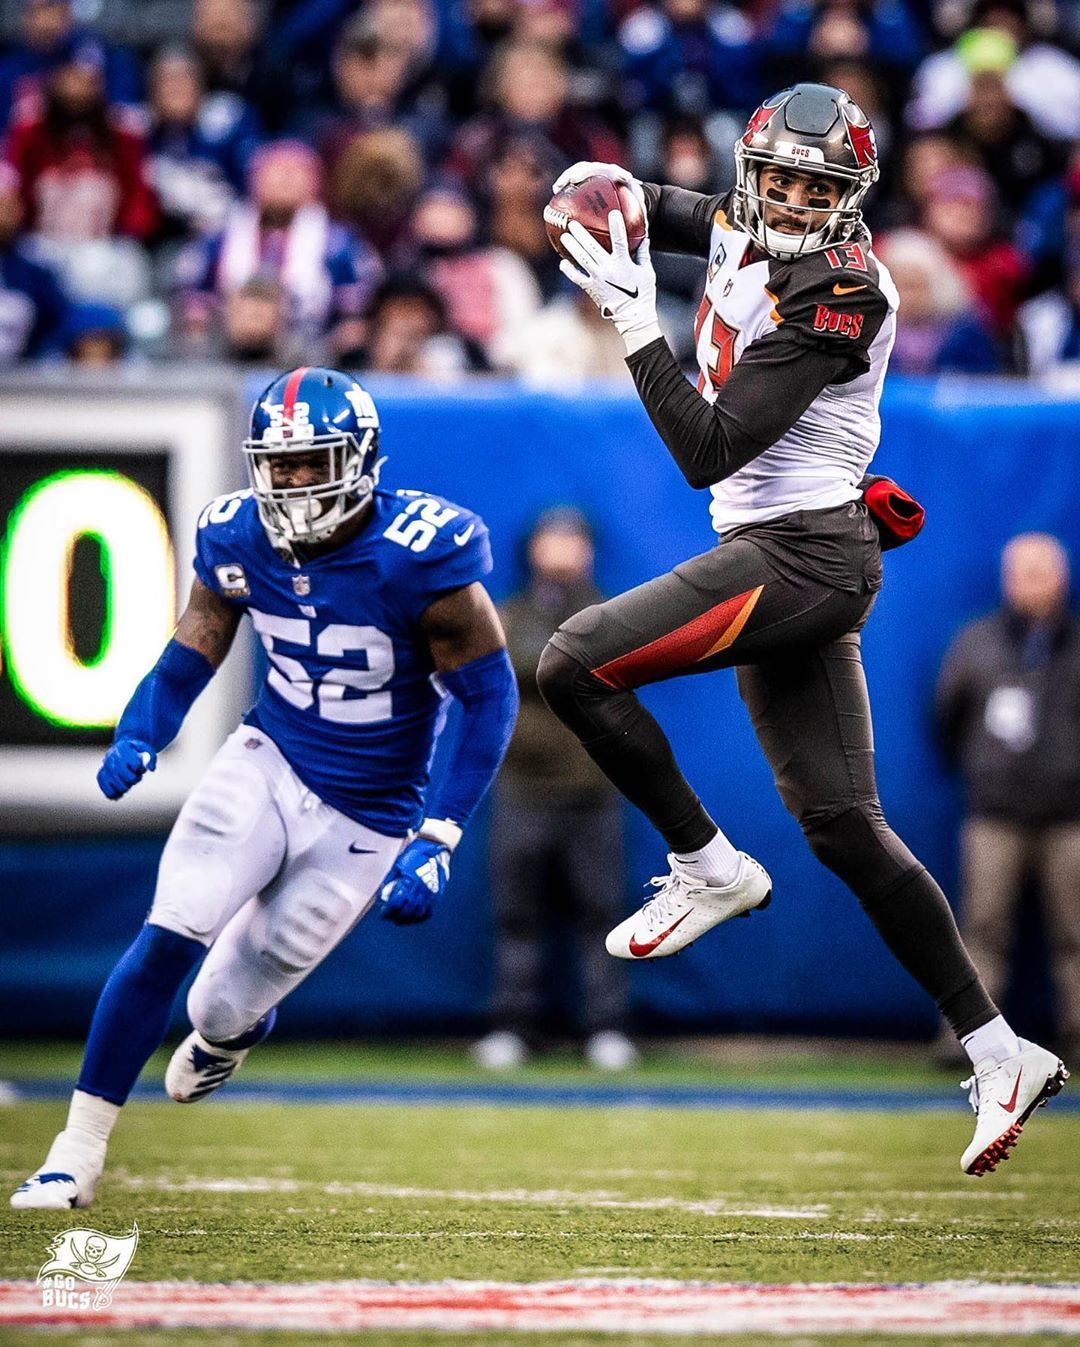 Tampa Bay Buccaneers Which Prime Time Game Are You Looking Forward To Most In 2020 Tampa Bay Buccaneers Tampa Bay Nfl Football Players